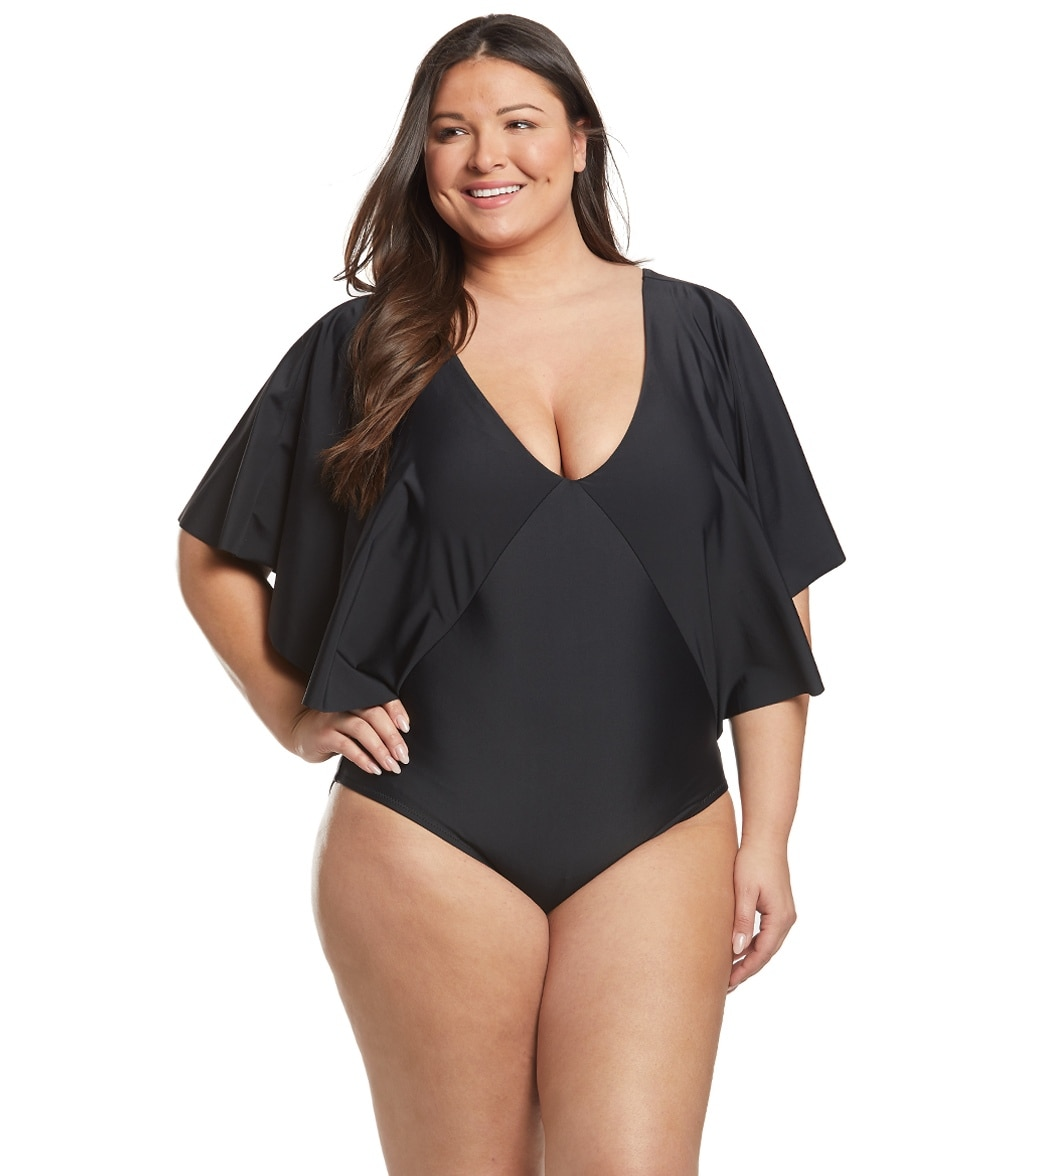 dfc20ec18f42a Raisins Plus Size Samba Solids Stingray One Piece Swimsuit at ...